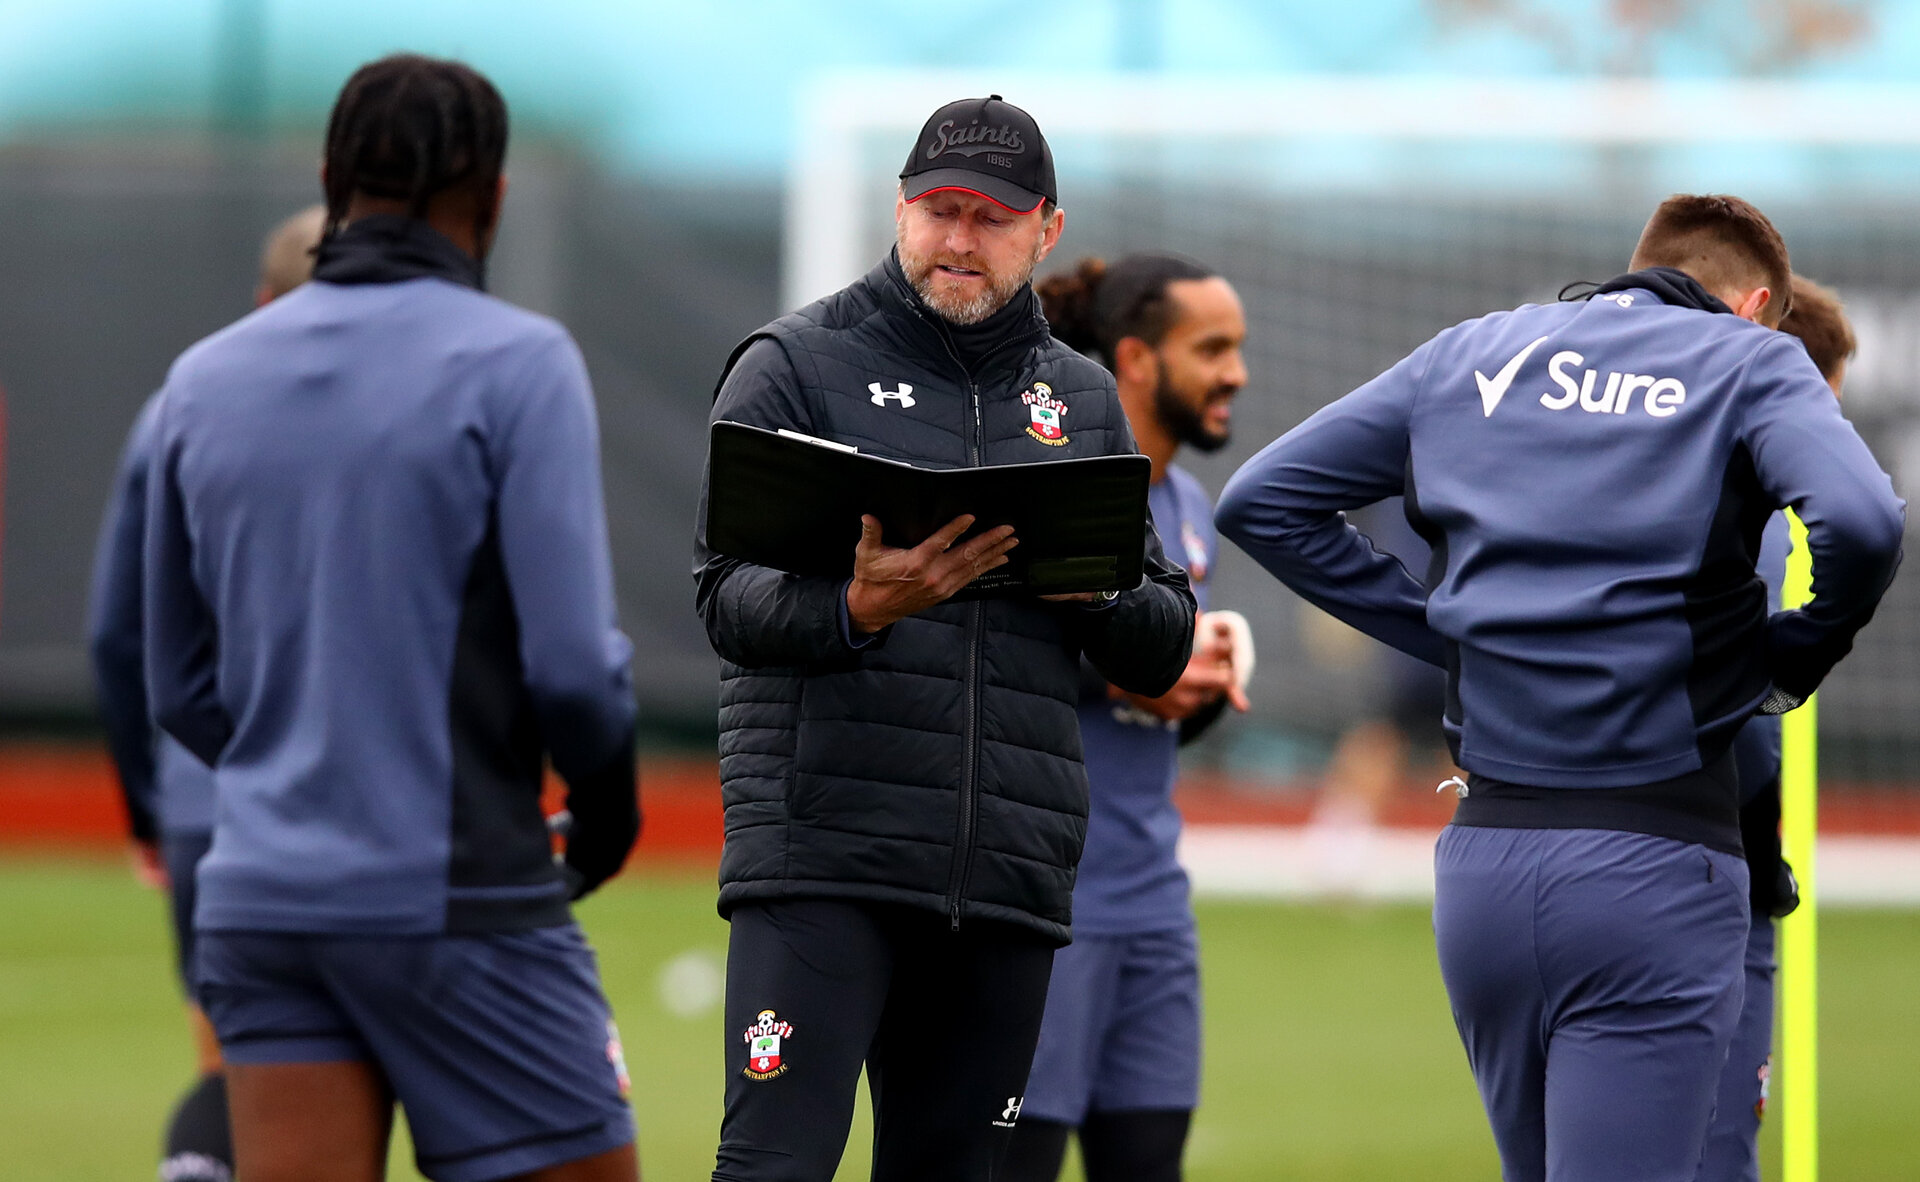 SOUTHAMPTON, ENGLAND - NOVEMBER 26: Ralph Hasenhüttl during a Southampton FC training session at the Staplewood Campus on November 26, 2020 in Southampton, England. (Photo by Matt Watson/Southampton FC via Getty Images)